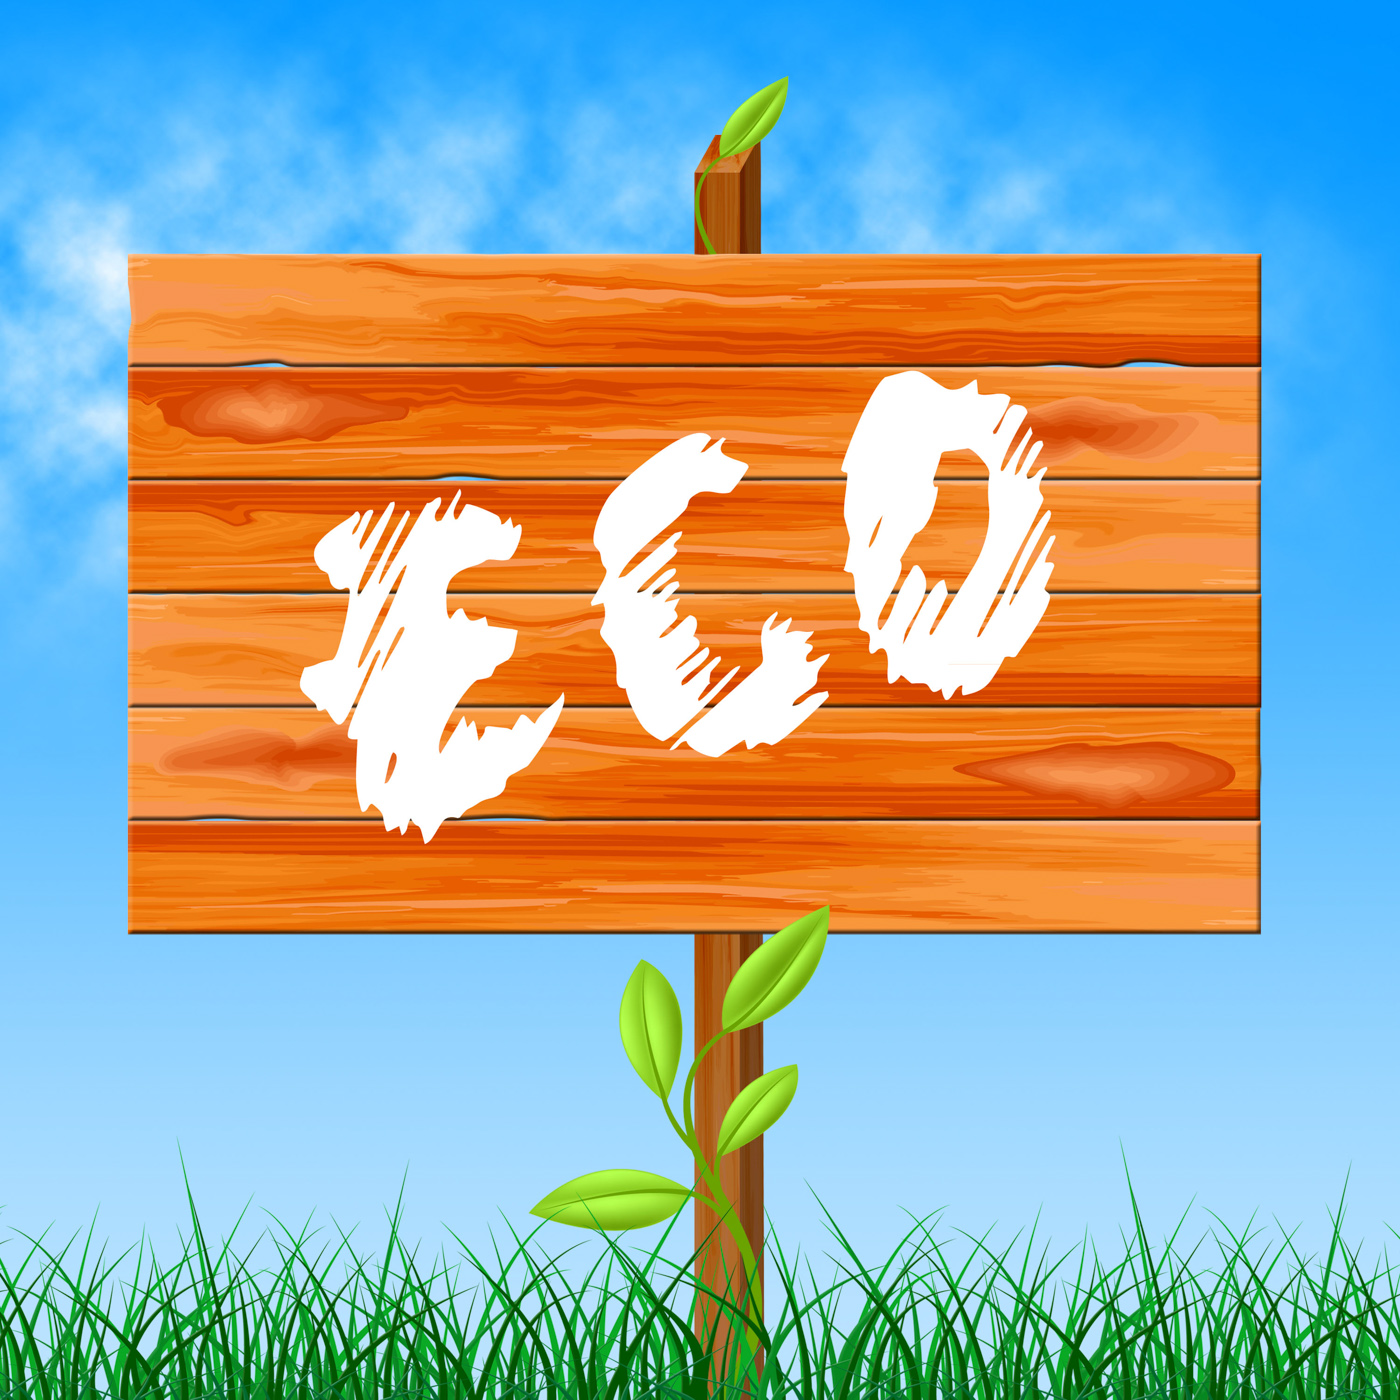 Eco Friendly Represents Go Green And Eco-Friendly, Conservation, Gogreen, Recycling, Recycled, HQ Photo